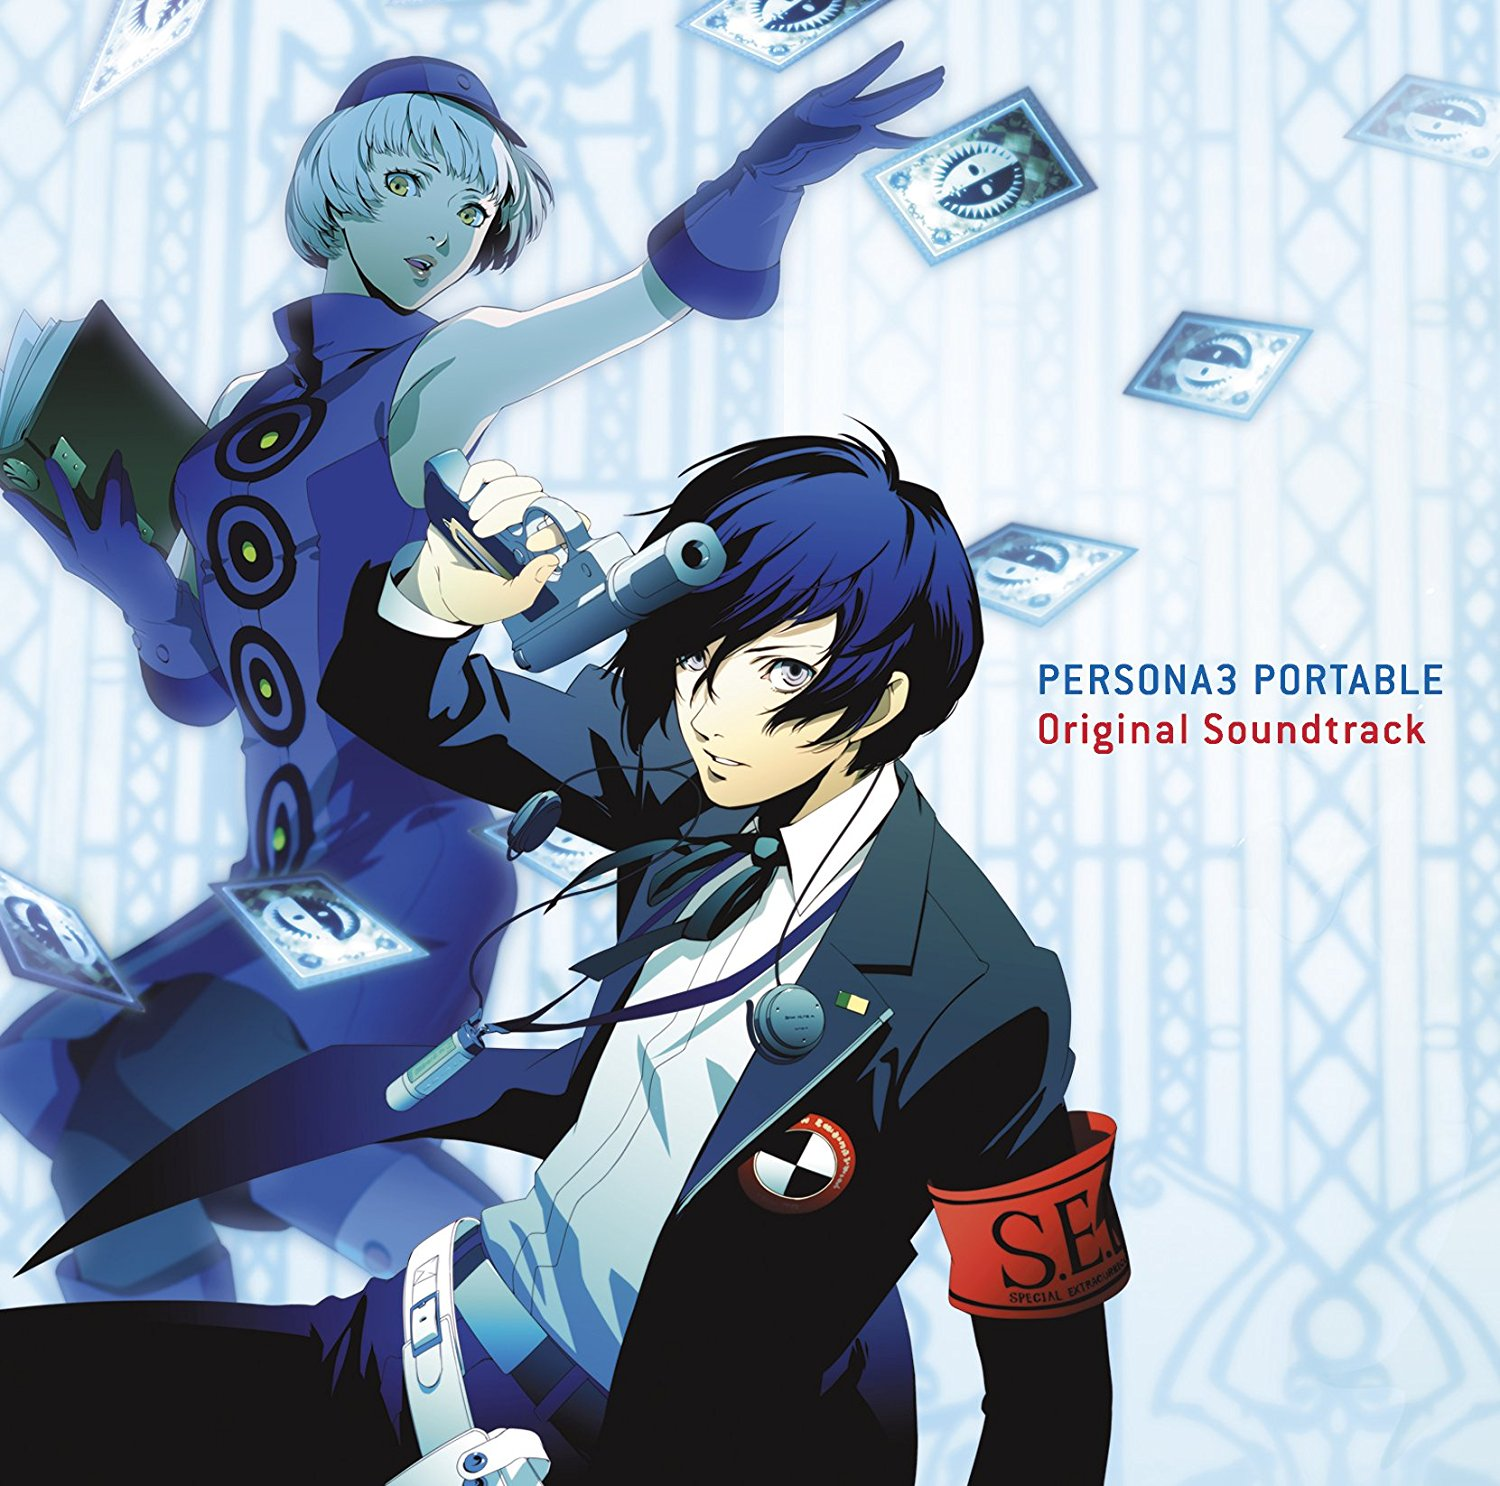 Persona 3 Portable Female Protagonist (Character) - Giant Bomb